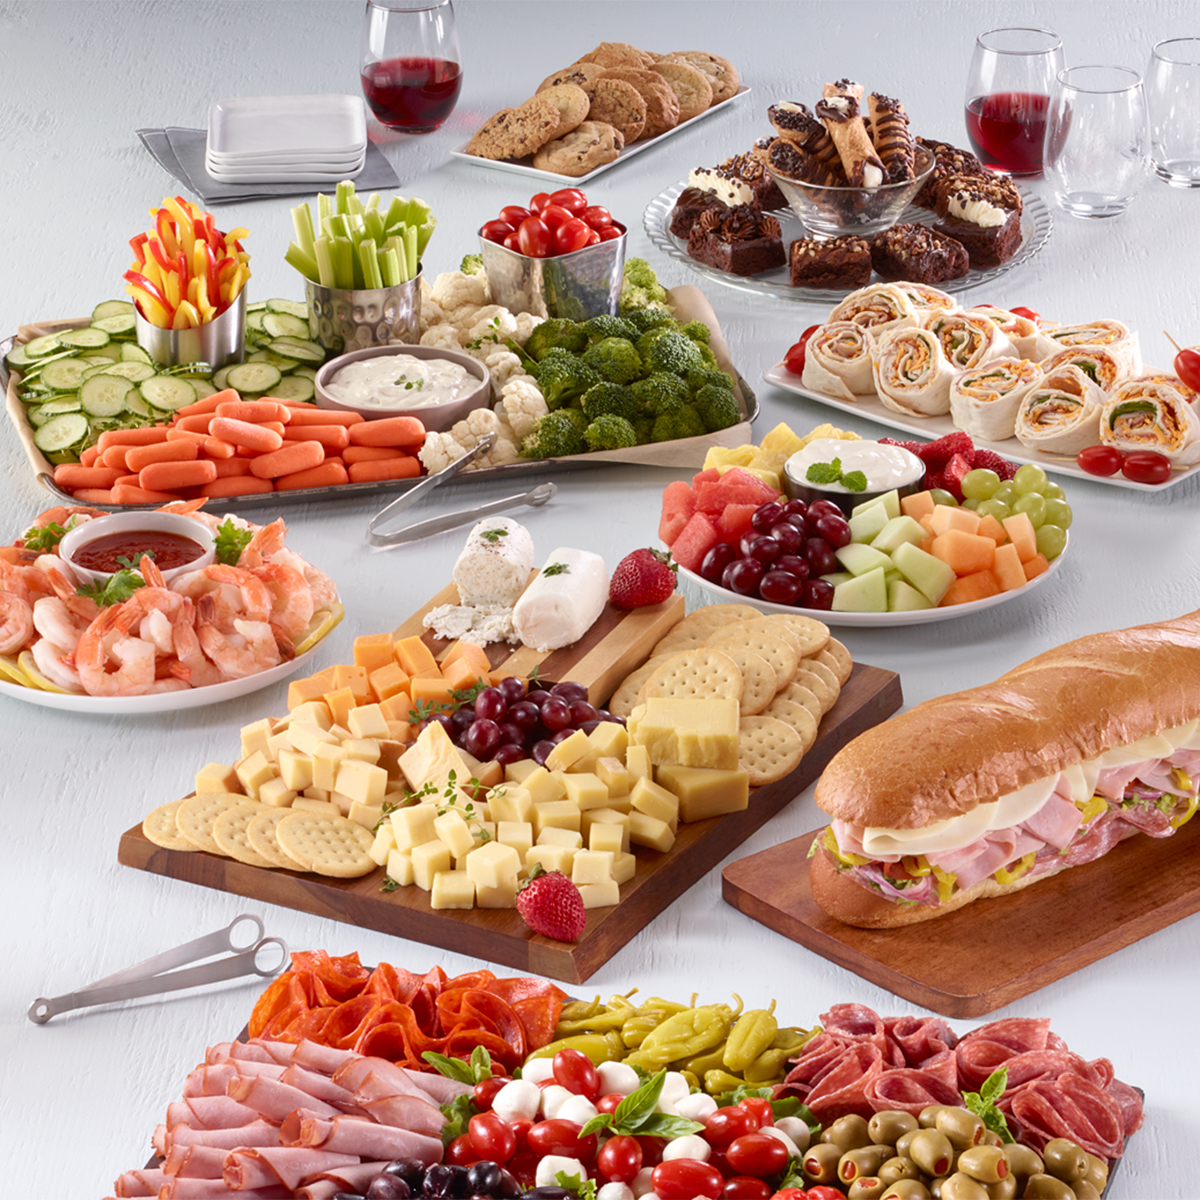 Let us help you make your next party a no-stress success!